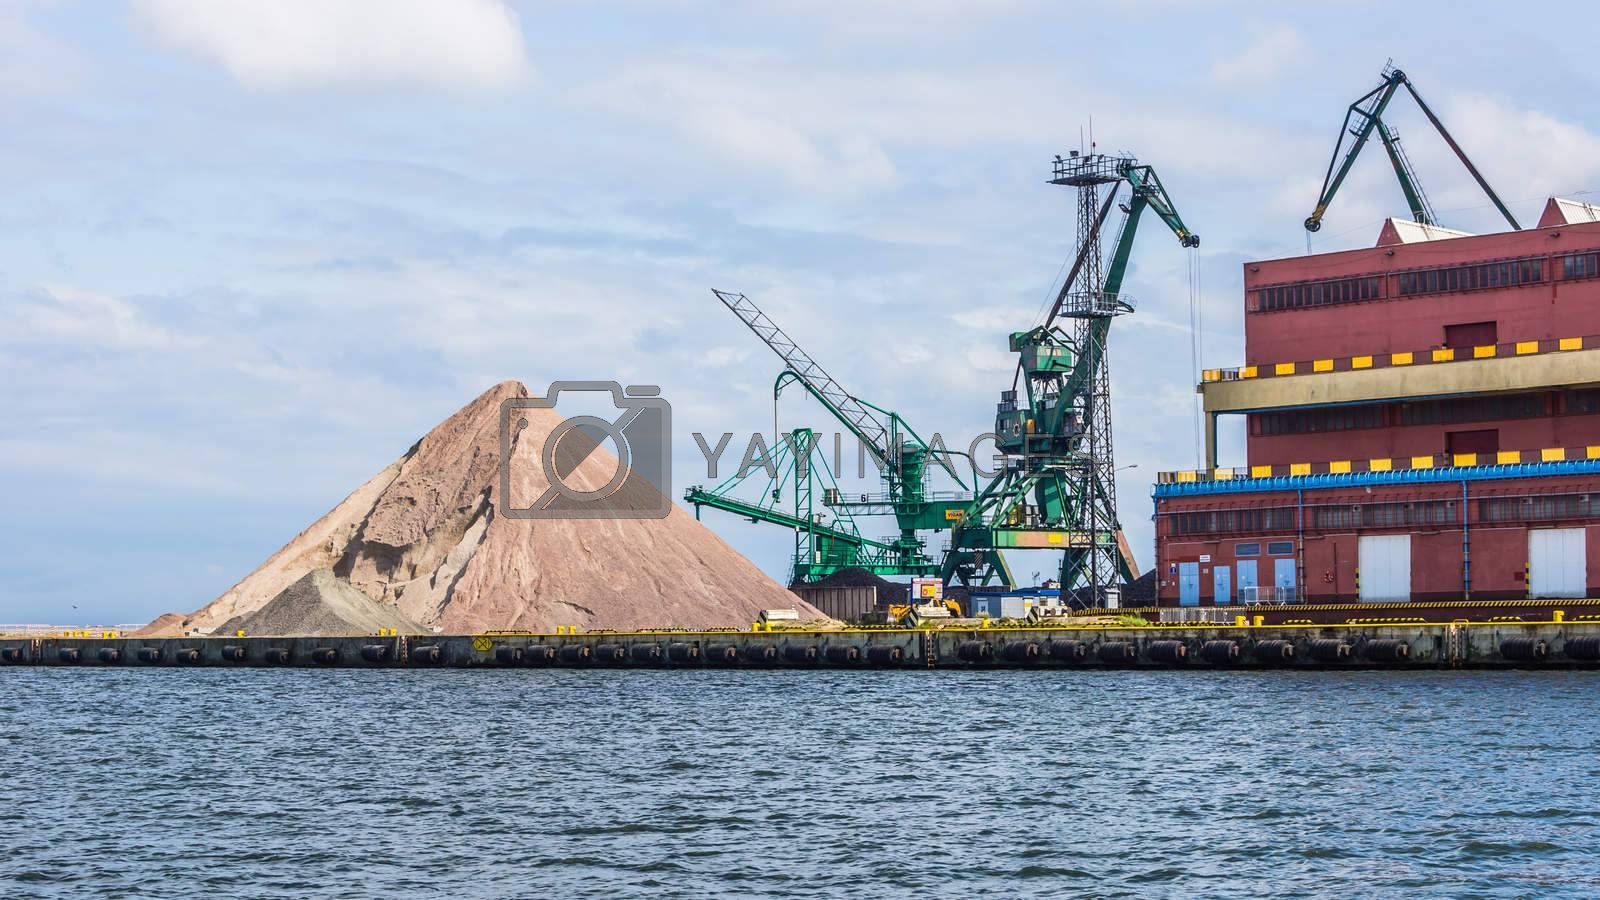 Heap of gravel on the quay, on July 10, 2013, in the Port of Gdynia - the third largest seaport in Poland, specialized in handling containers, ro-ro and ferry transport.